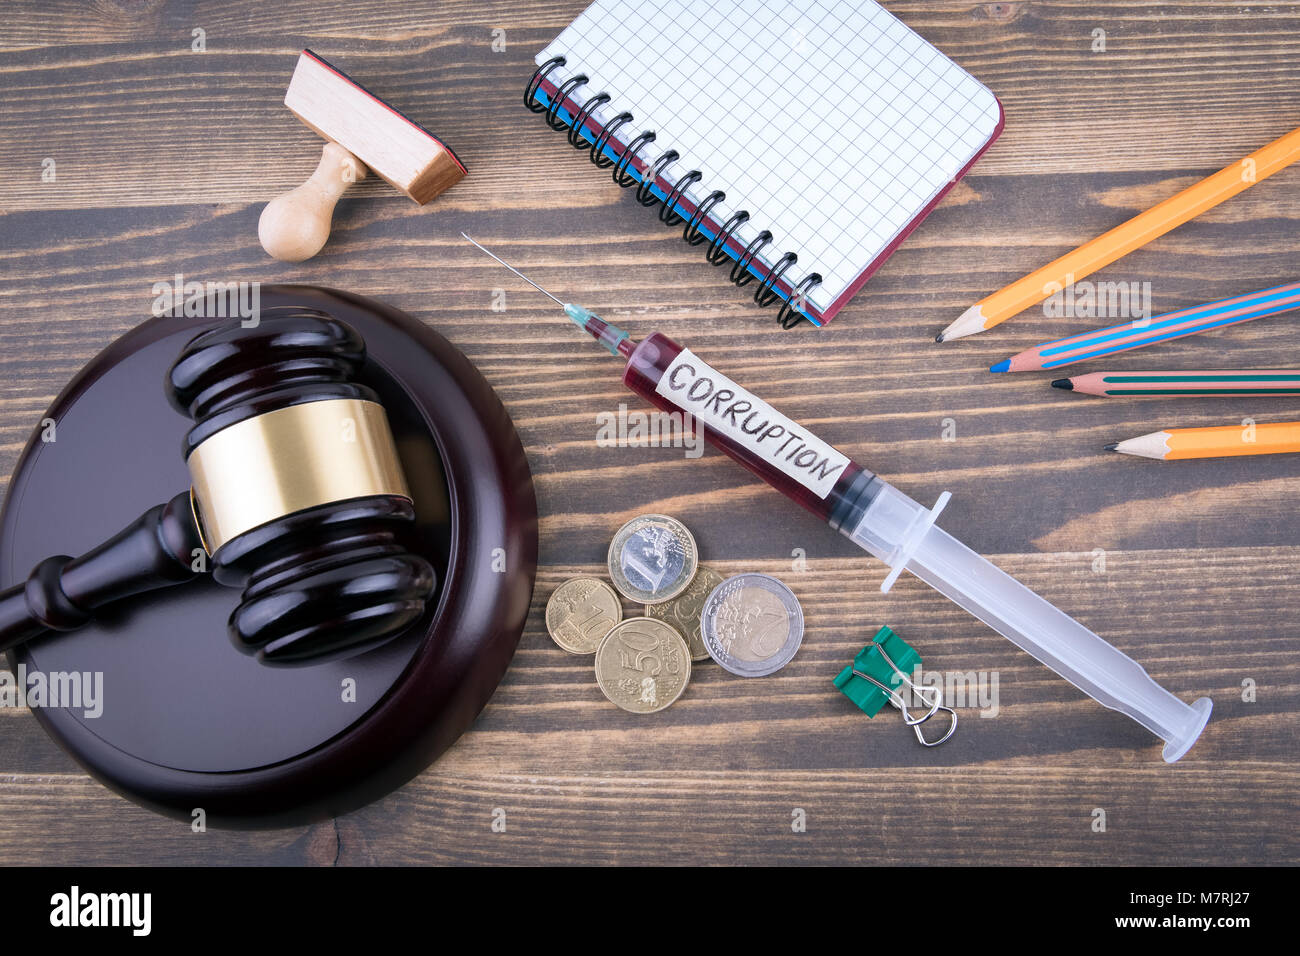 corruption concept. Medicine syringe with liquid inside and inscribtion. background to the business court's - Stock Image